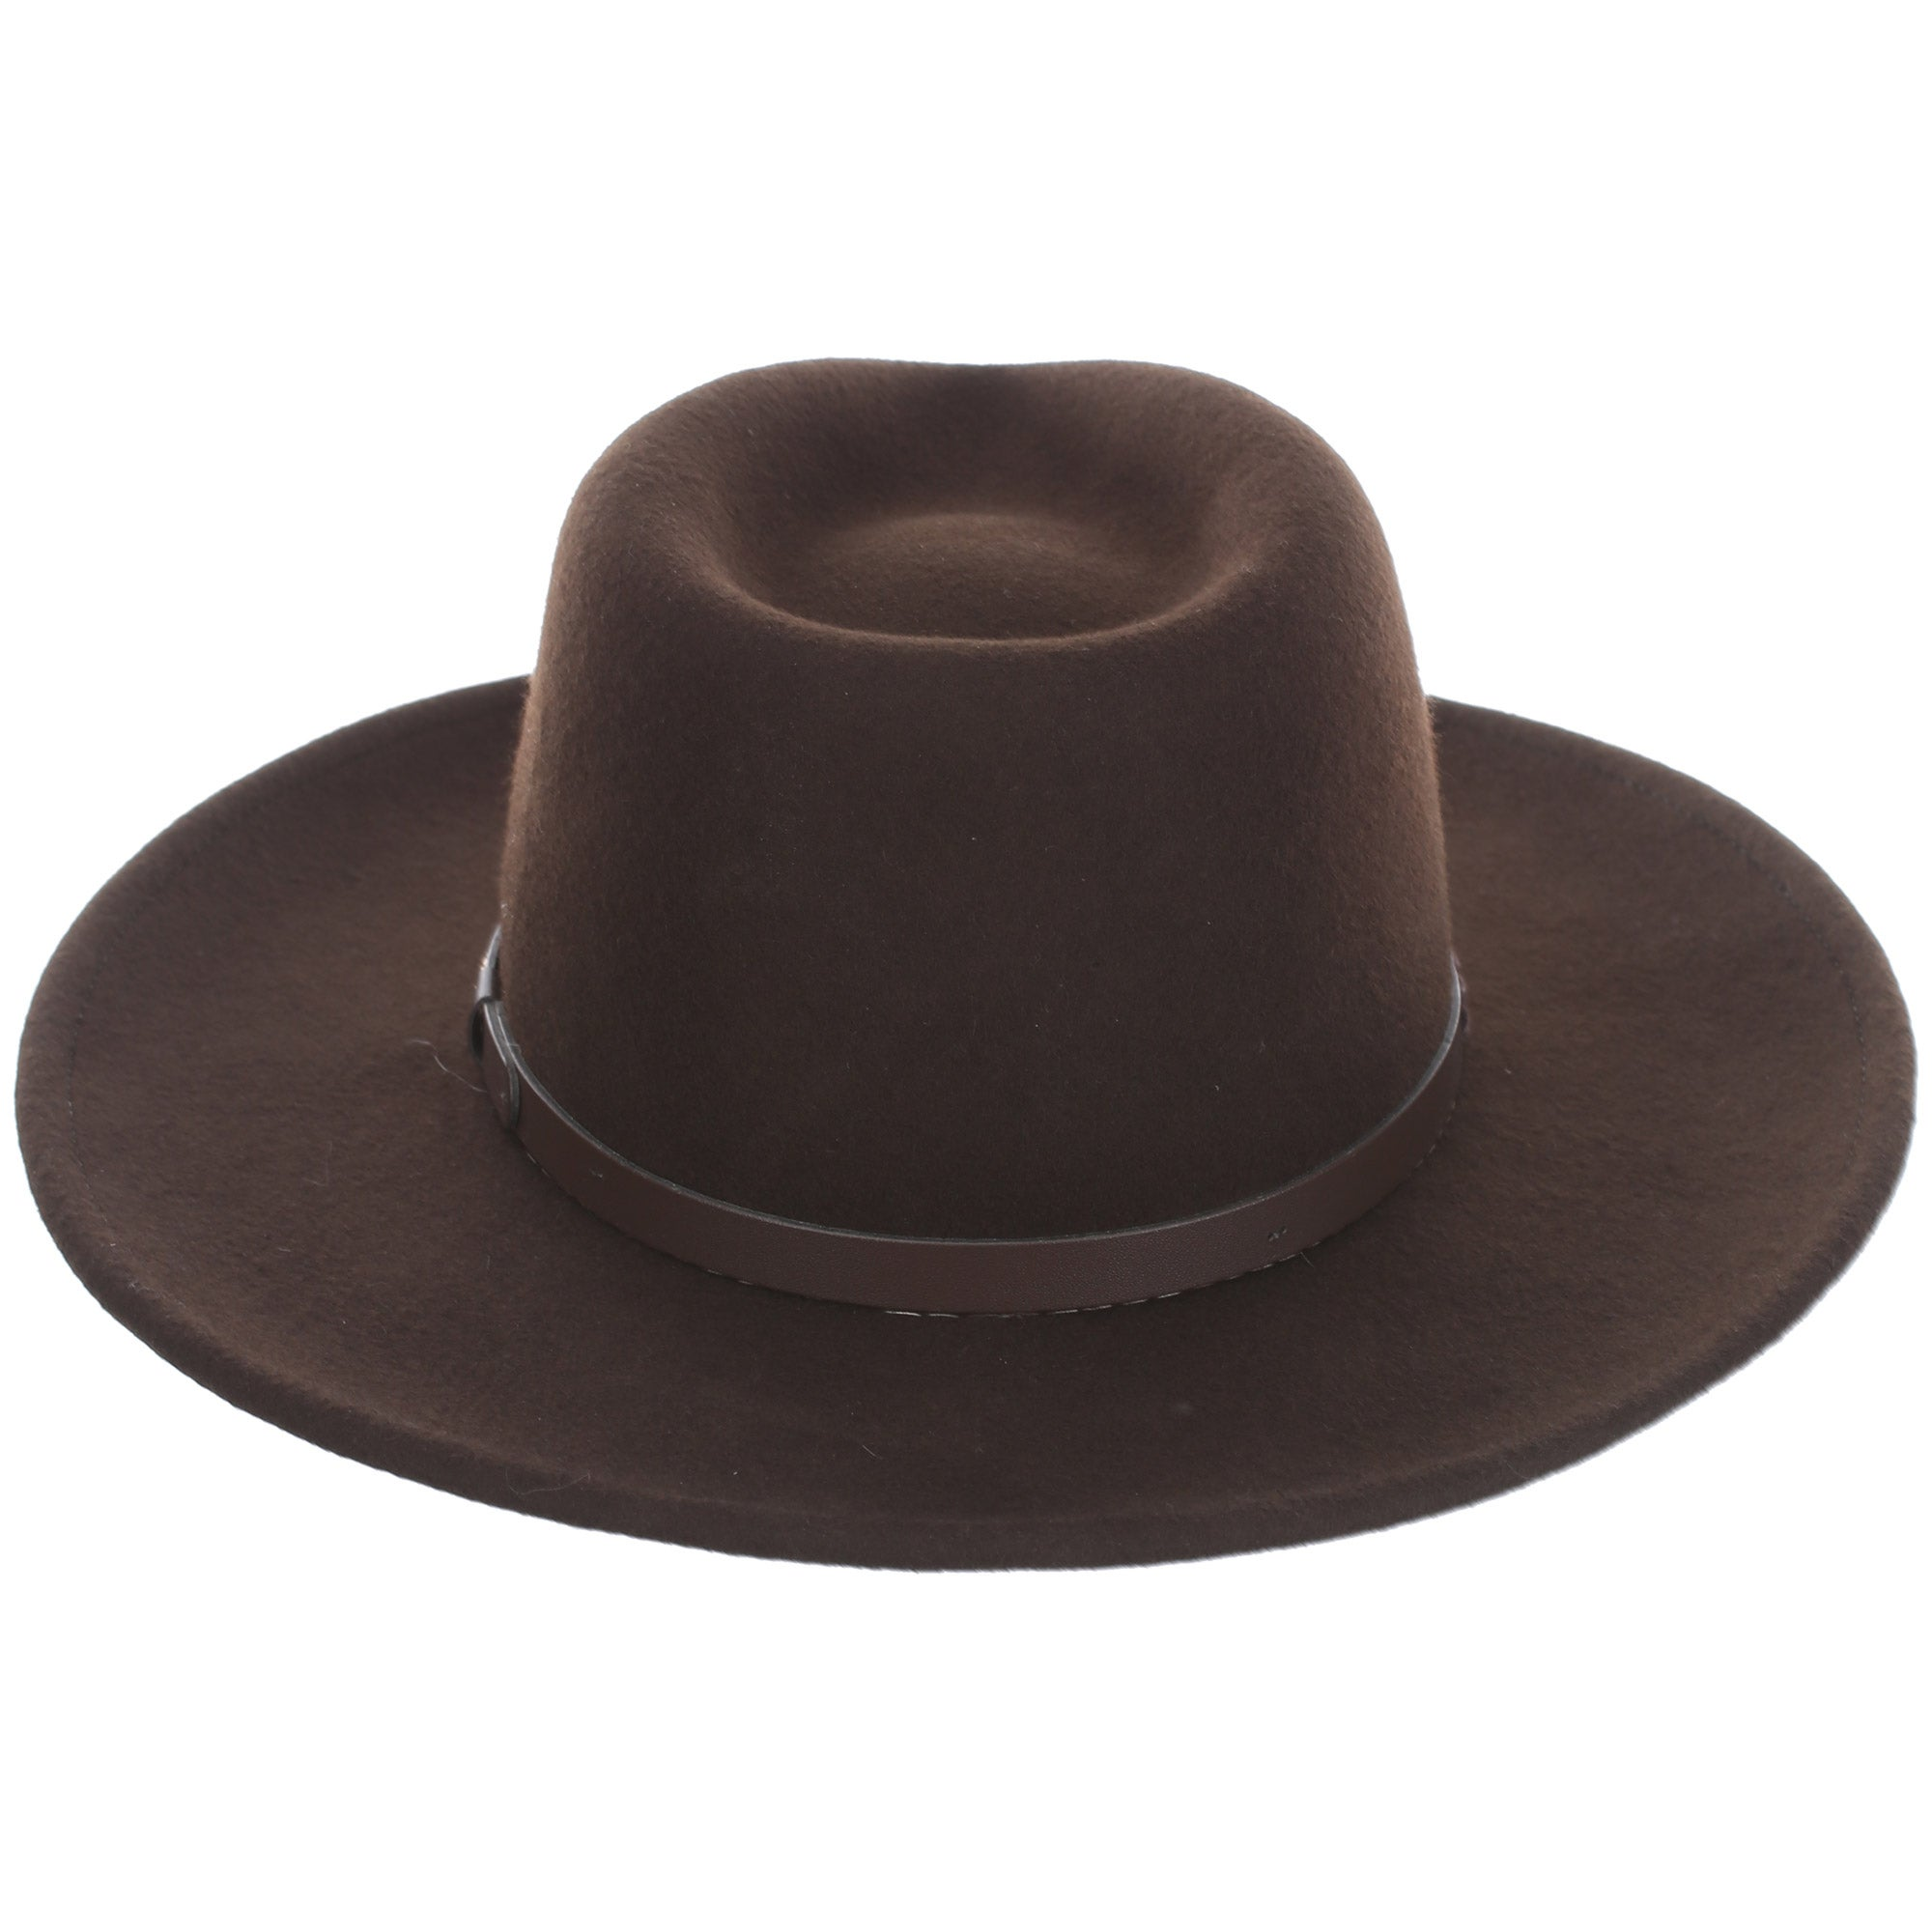 9ed3c332366eb Stetson Sturgis Crushable Outdoor Collection Hat - Riding Warehouse